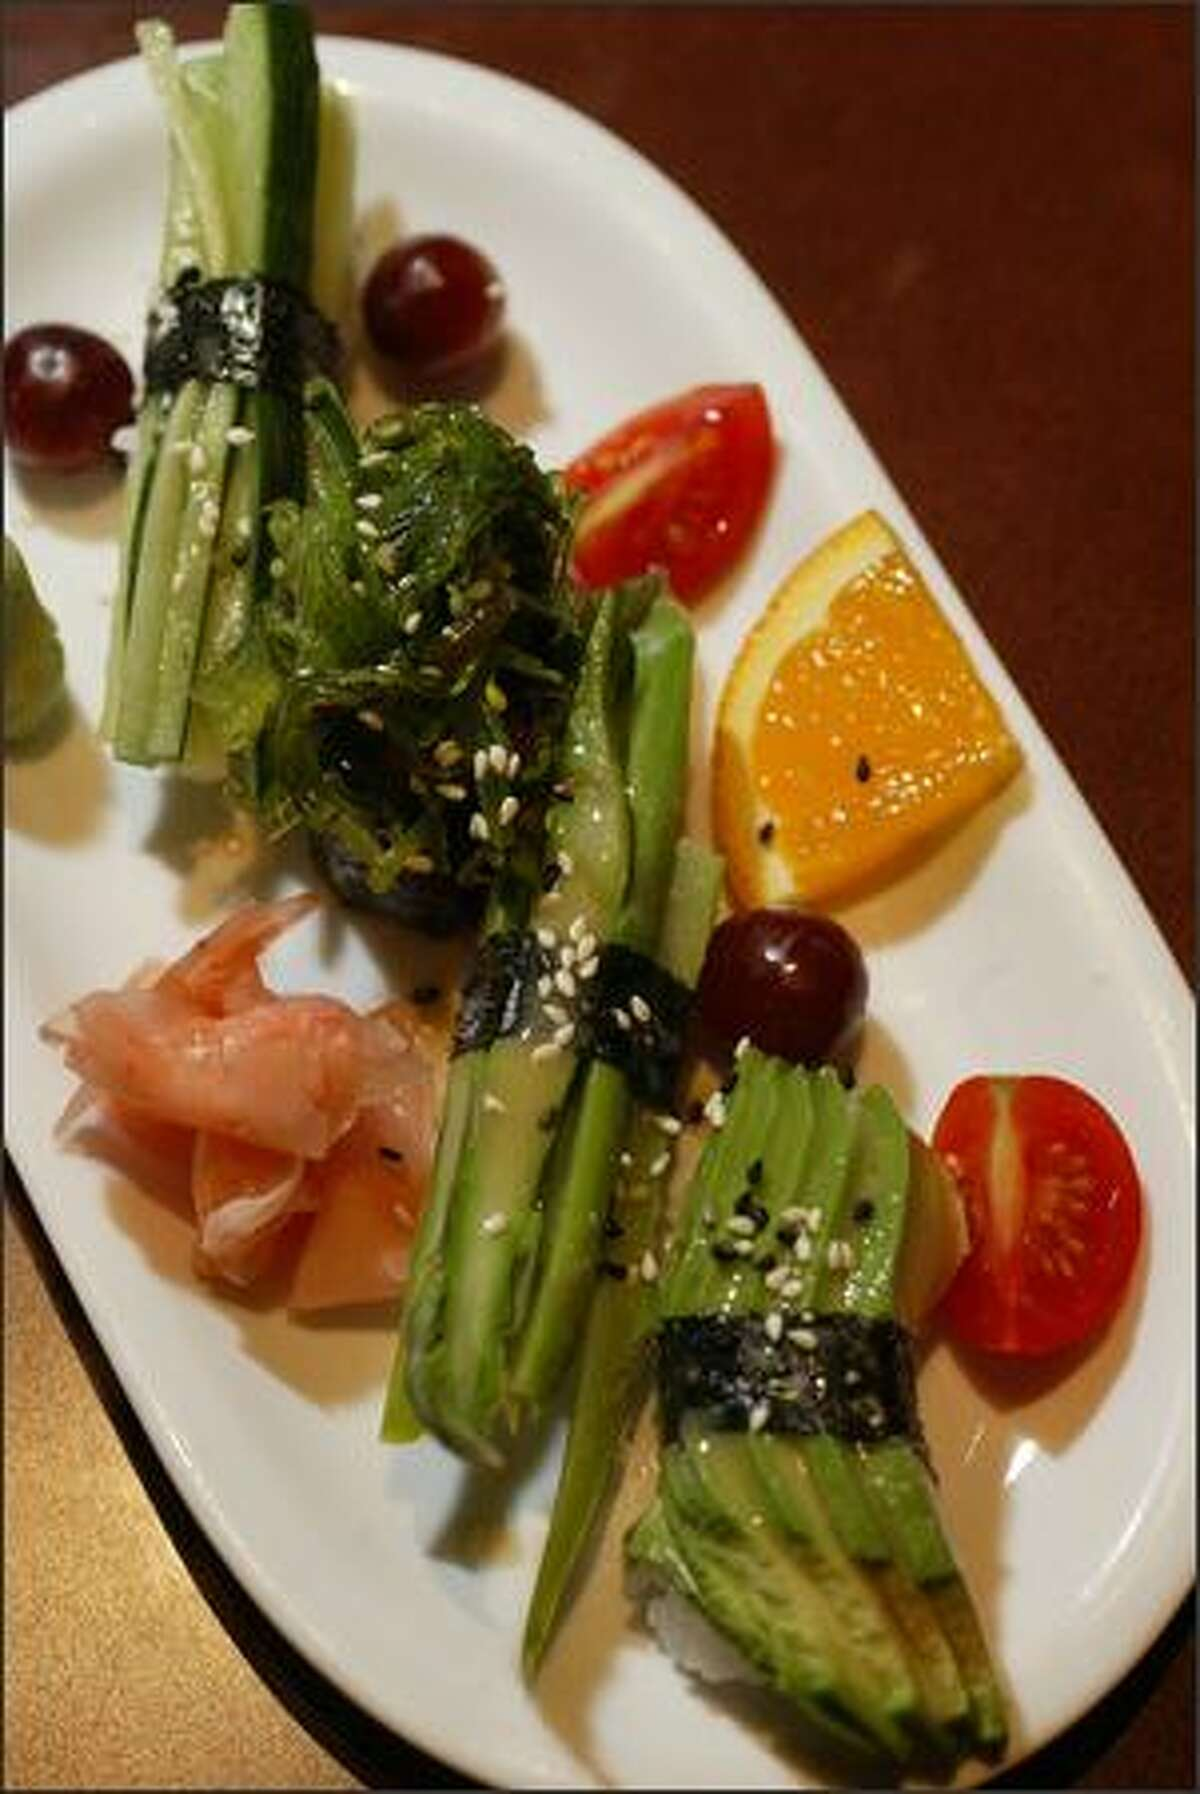 Bonzai Pub and Bistro offers a Veggie Nigiri sushi plate for $4 during happy hour. The dish includes seaweed, asparagus, avocado and cucumber.